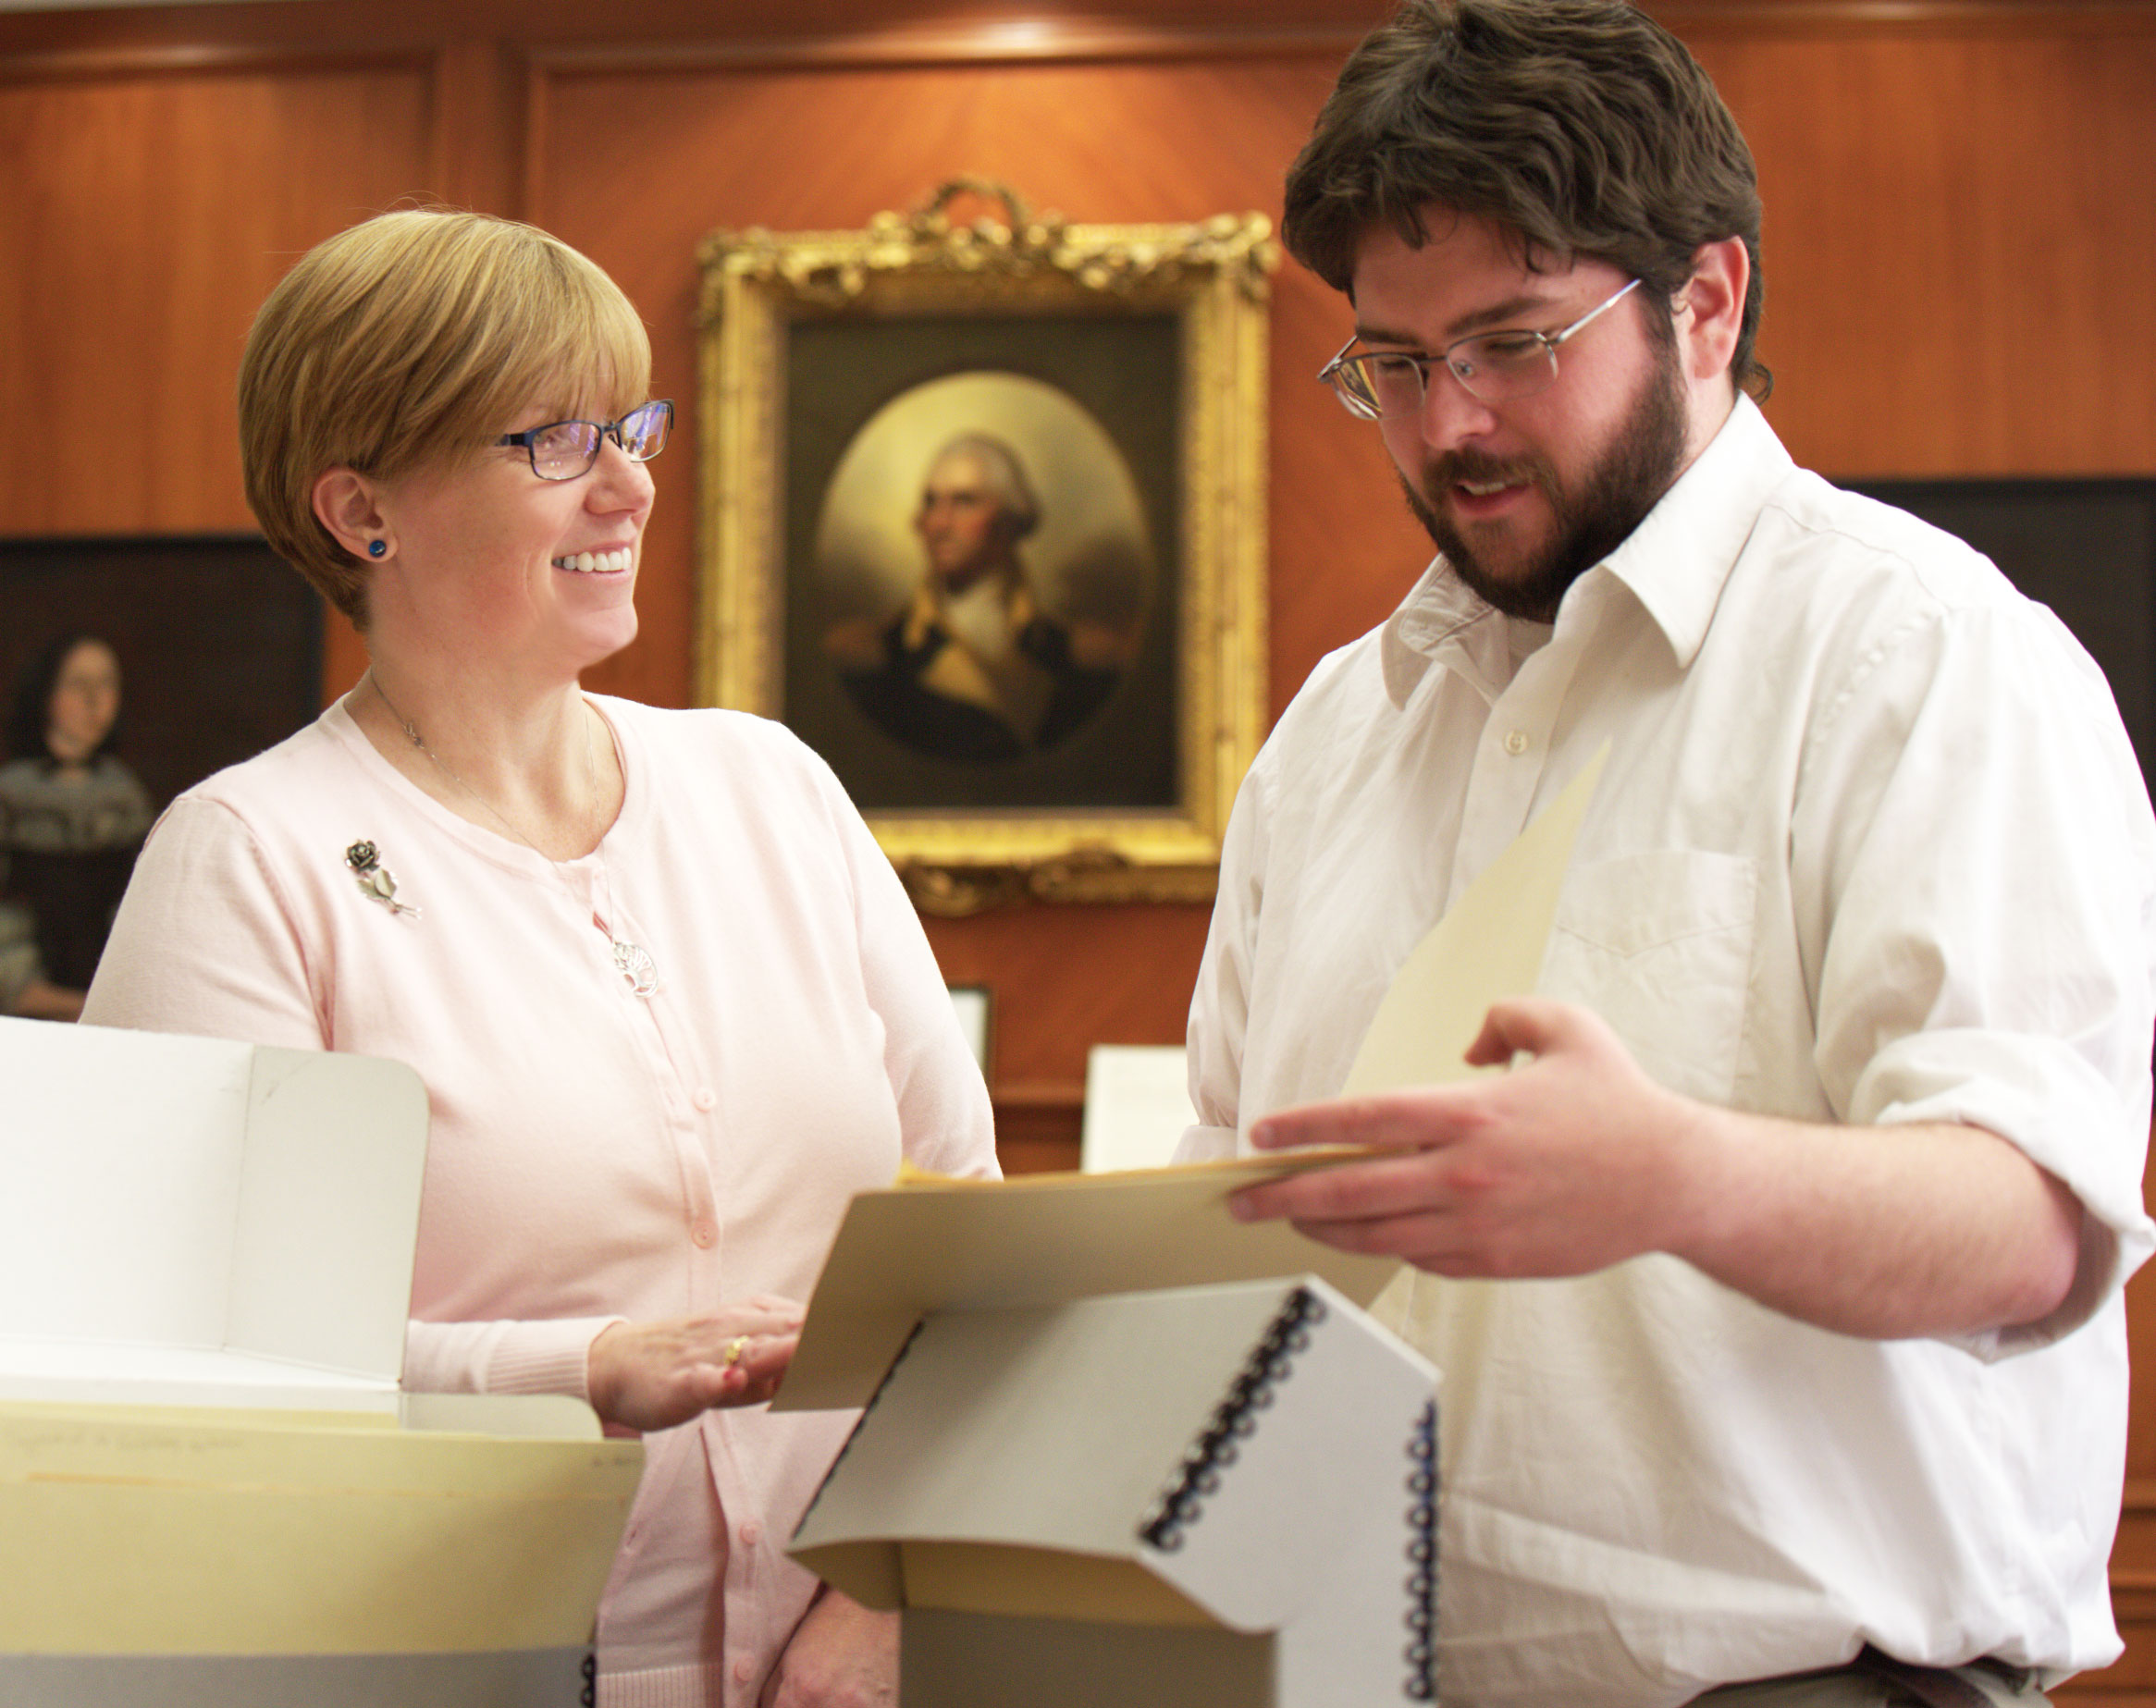 Work With the Most Respected Genealogists